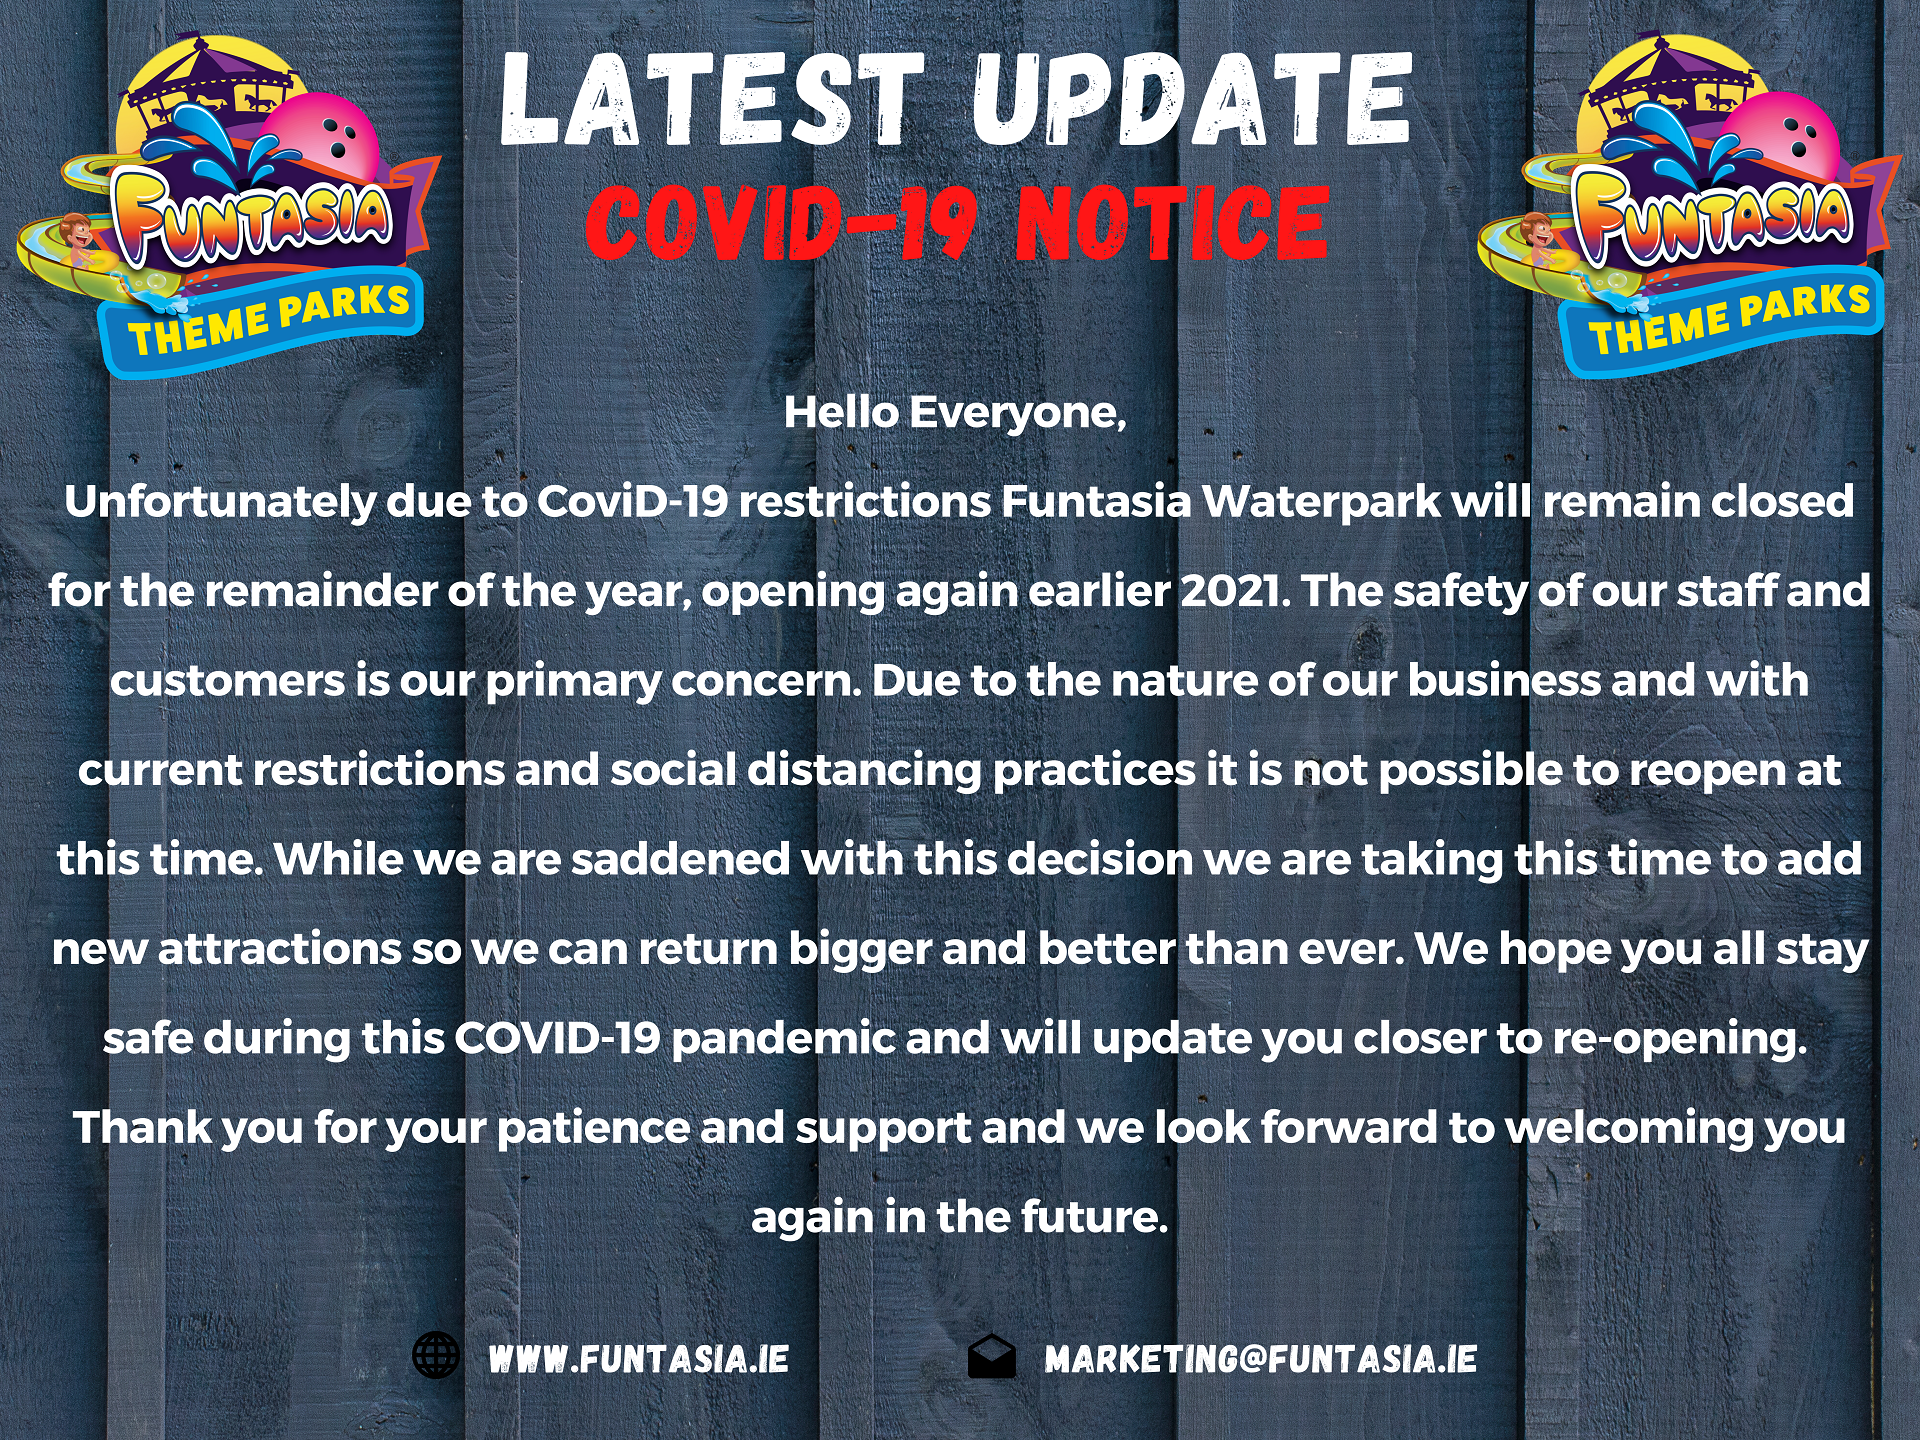 COVID-19 Notice Funtasia Theme Park Closed until 2021